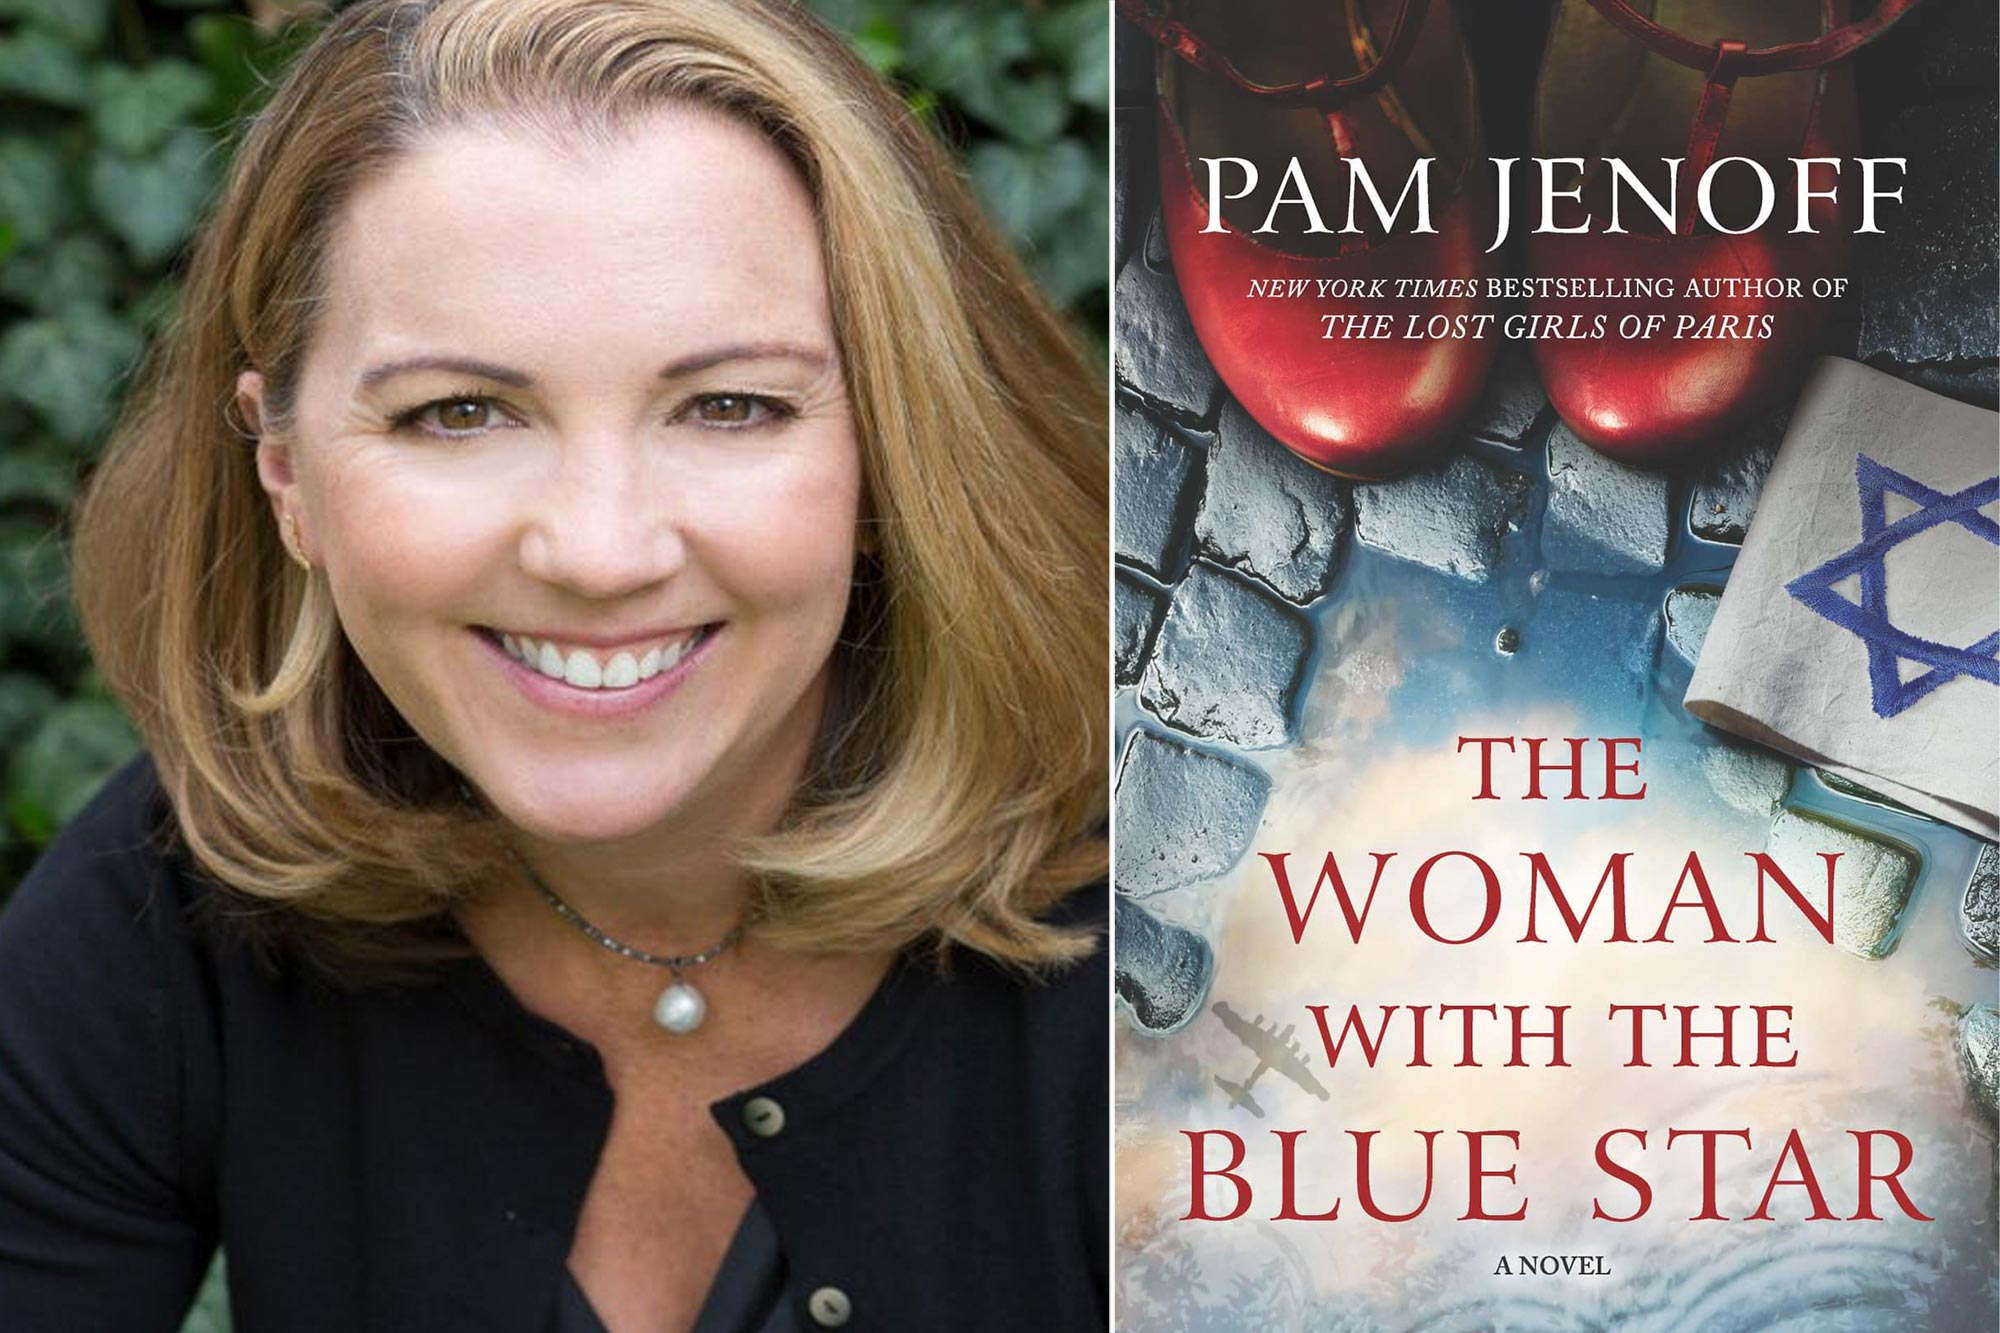 Jane Healey recommends The Woman With the Blue Star